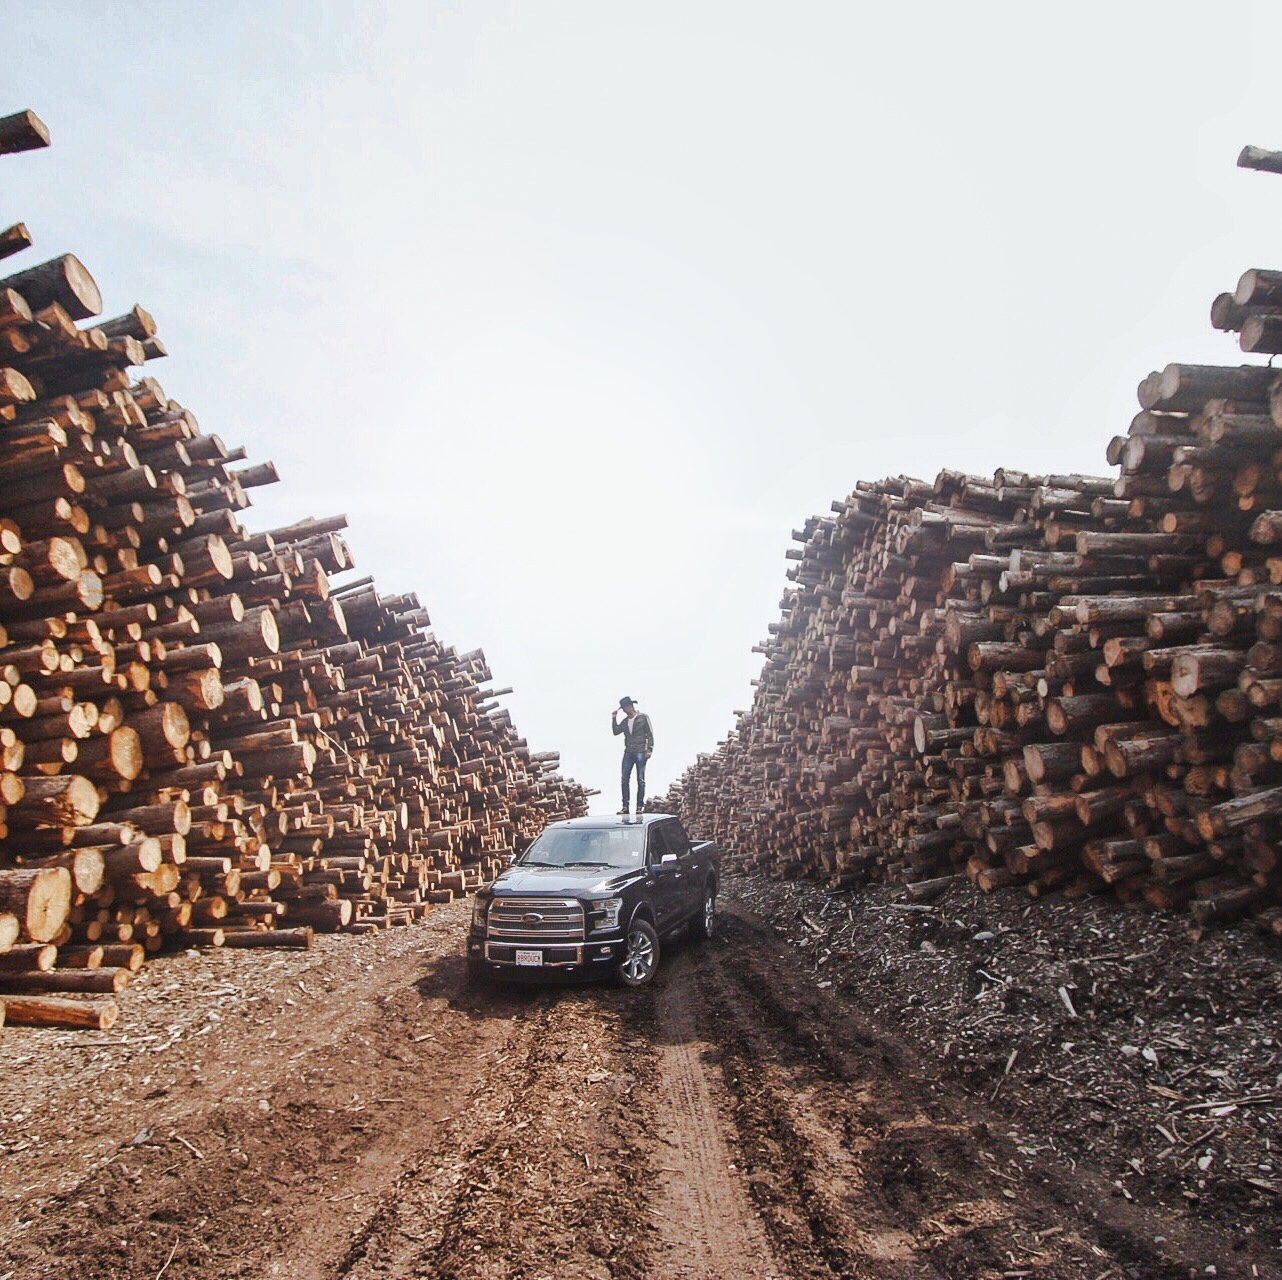 Paul standing on a Ford in a sawmill.